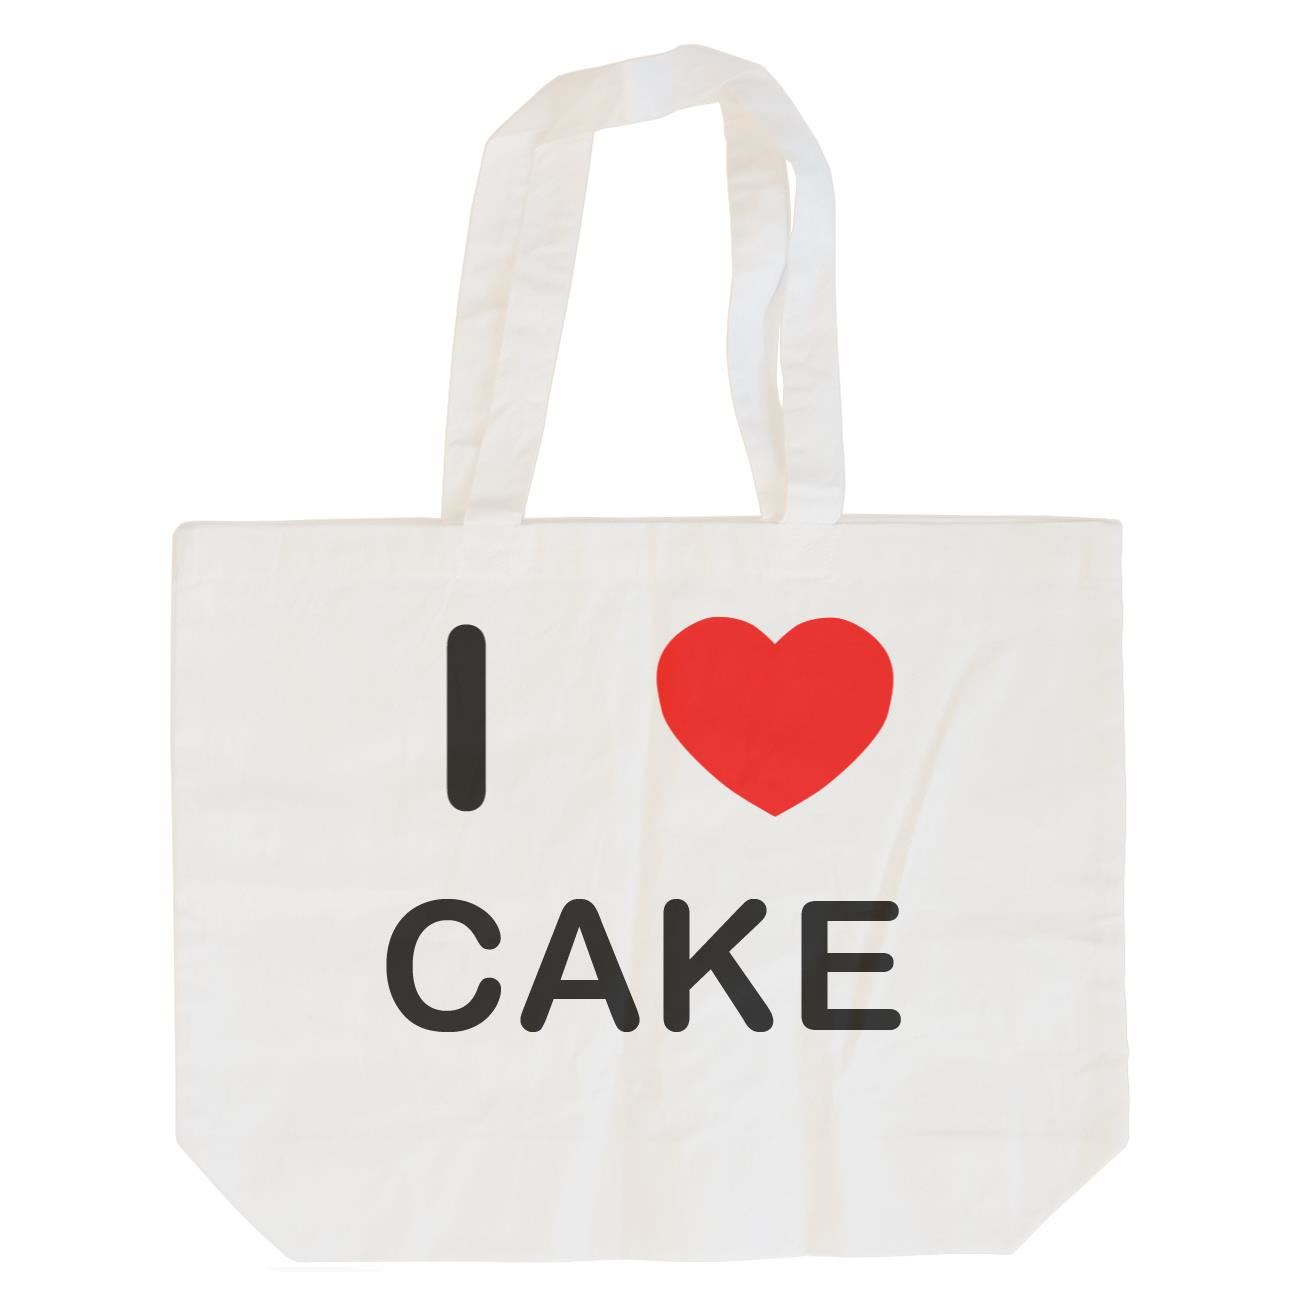 I Love Cake - Cotton Bag | Size choice Tote, Shopper or Sling